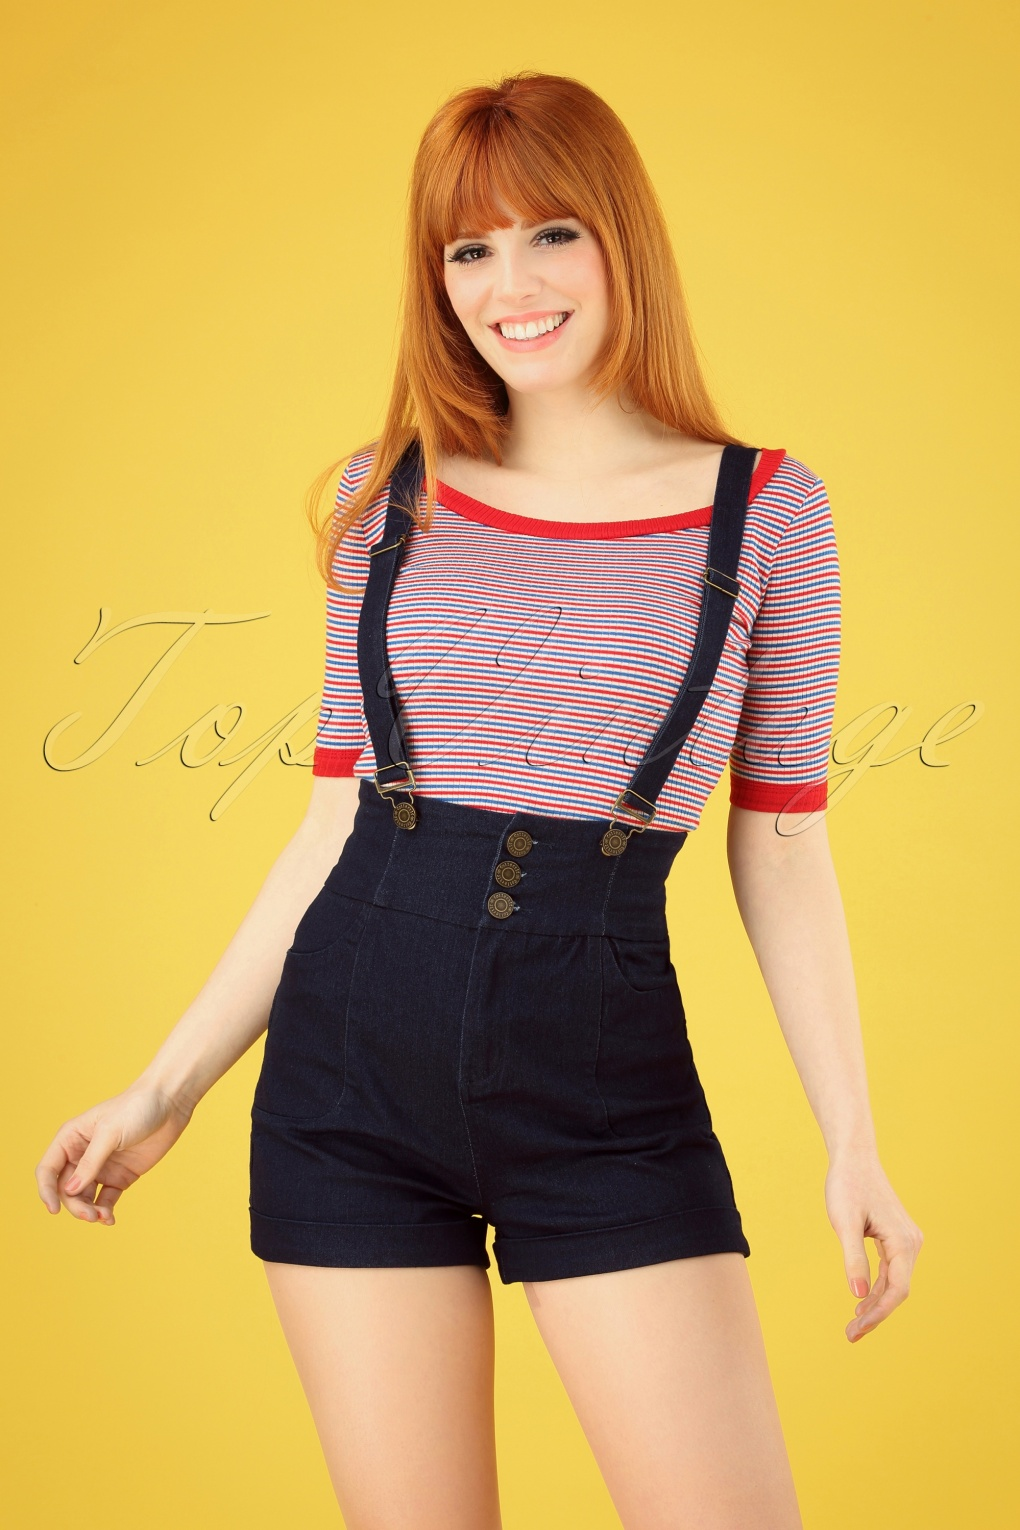 Vintage High Waisted Shorts, Sailor Shorts, Retro Shorts 50s Nomi Dungaree Shorts in Denim Blue £44.16 AT vintagedancer.com